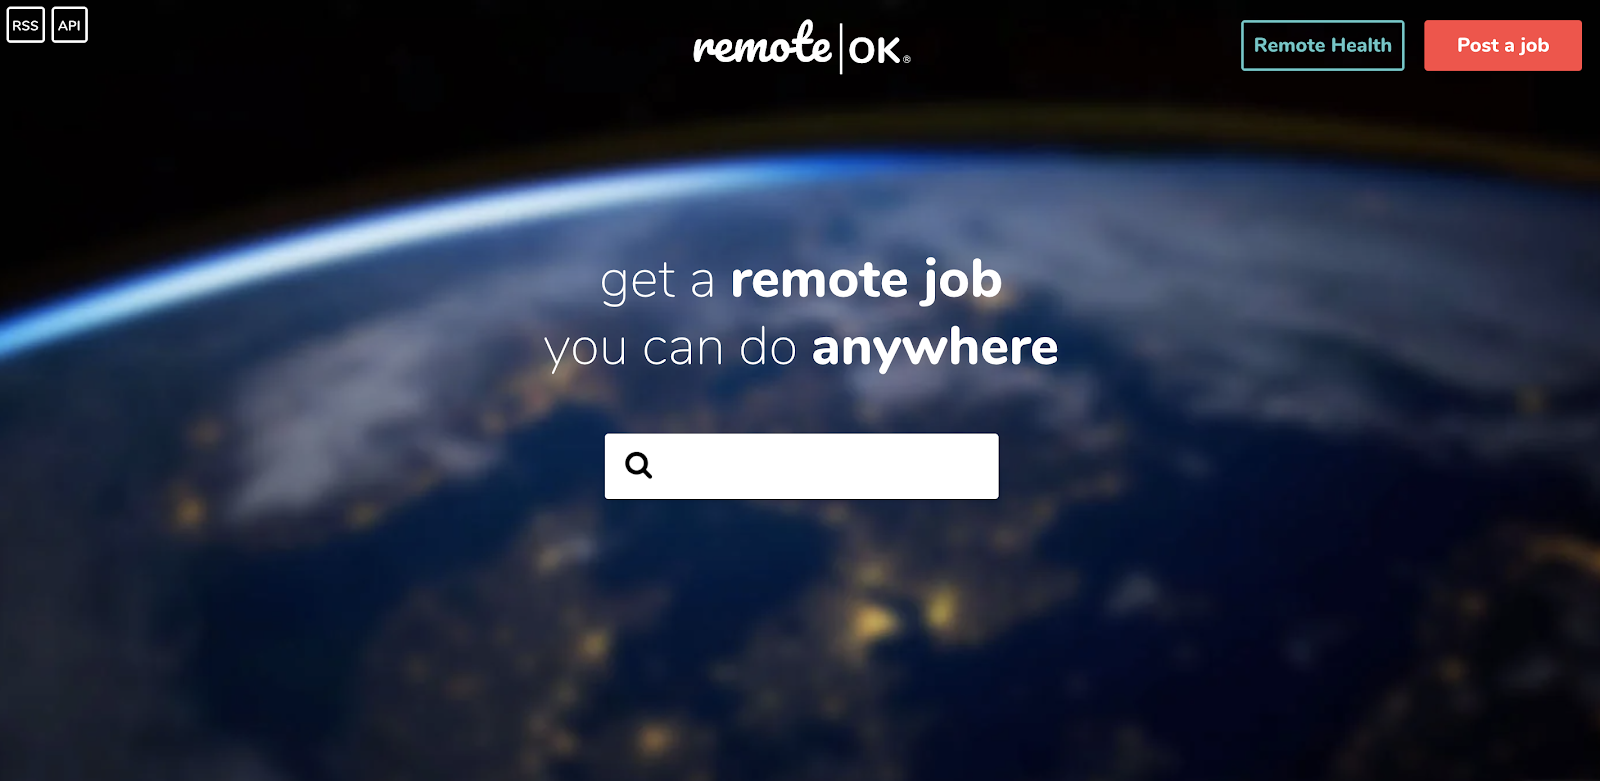 Remote OK: Work From Home Search Engine